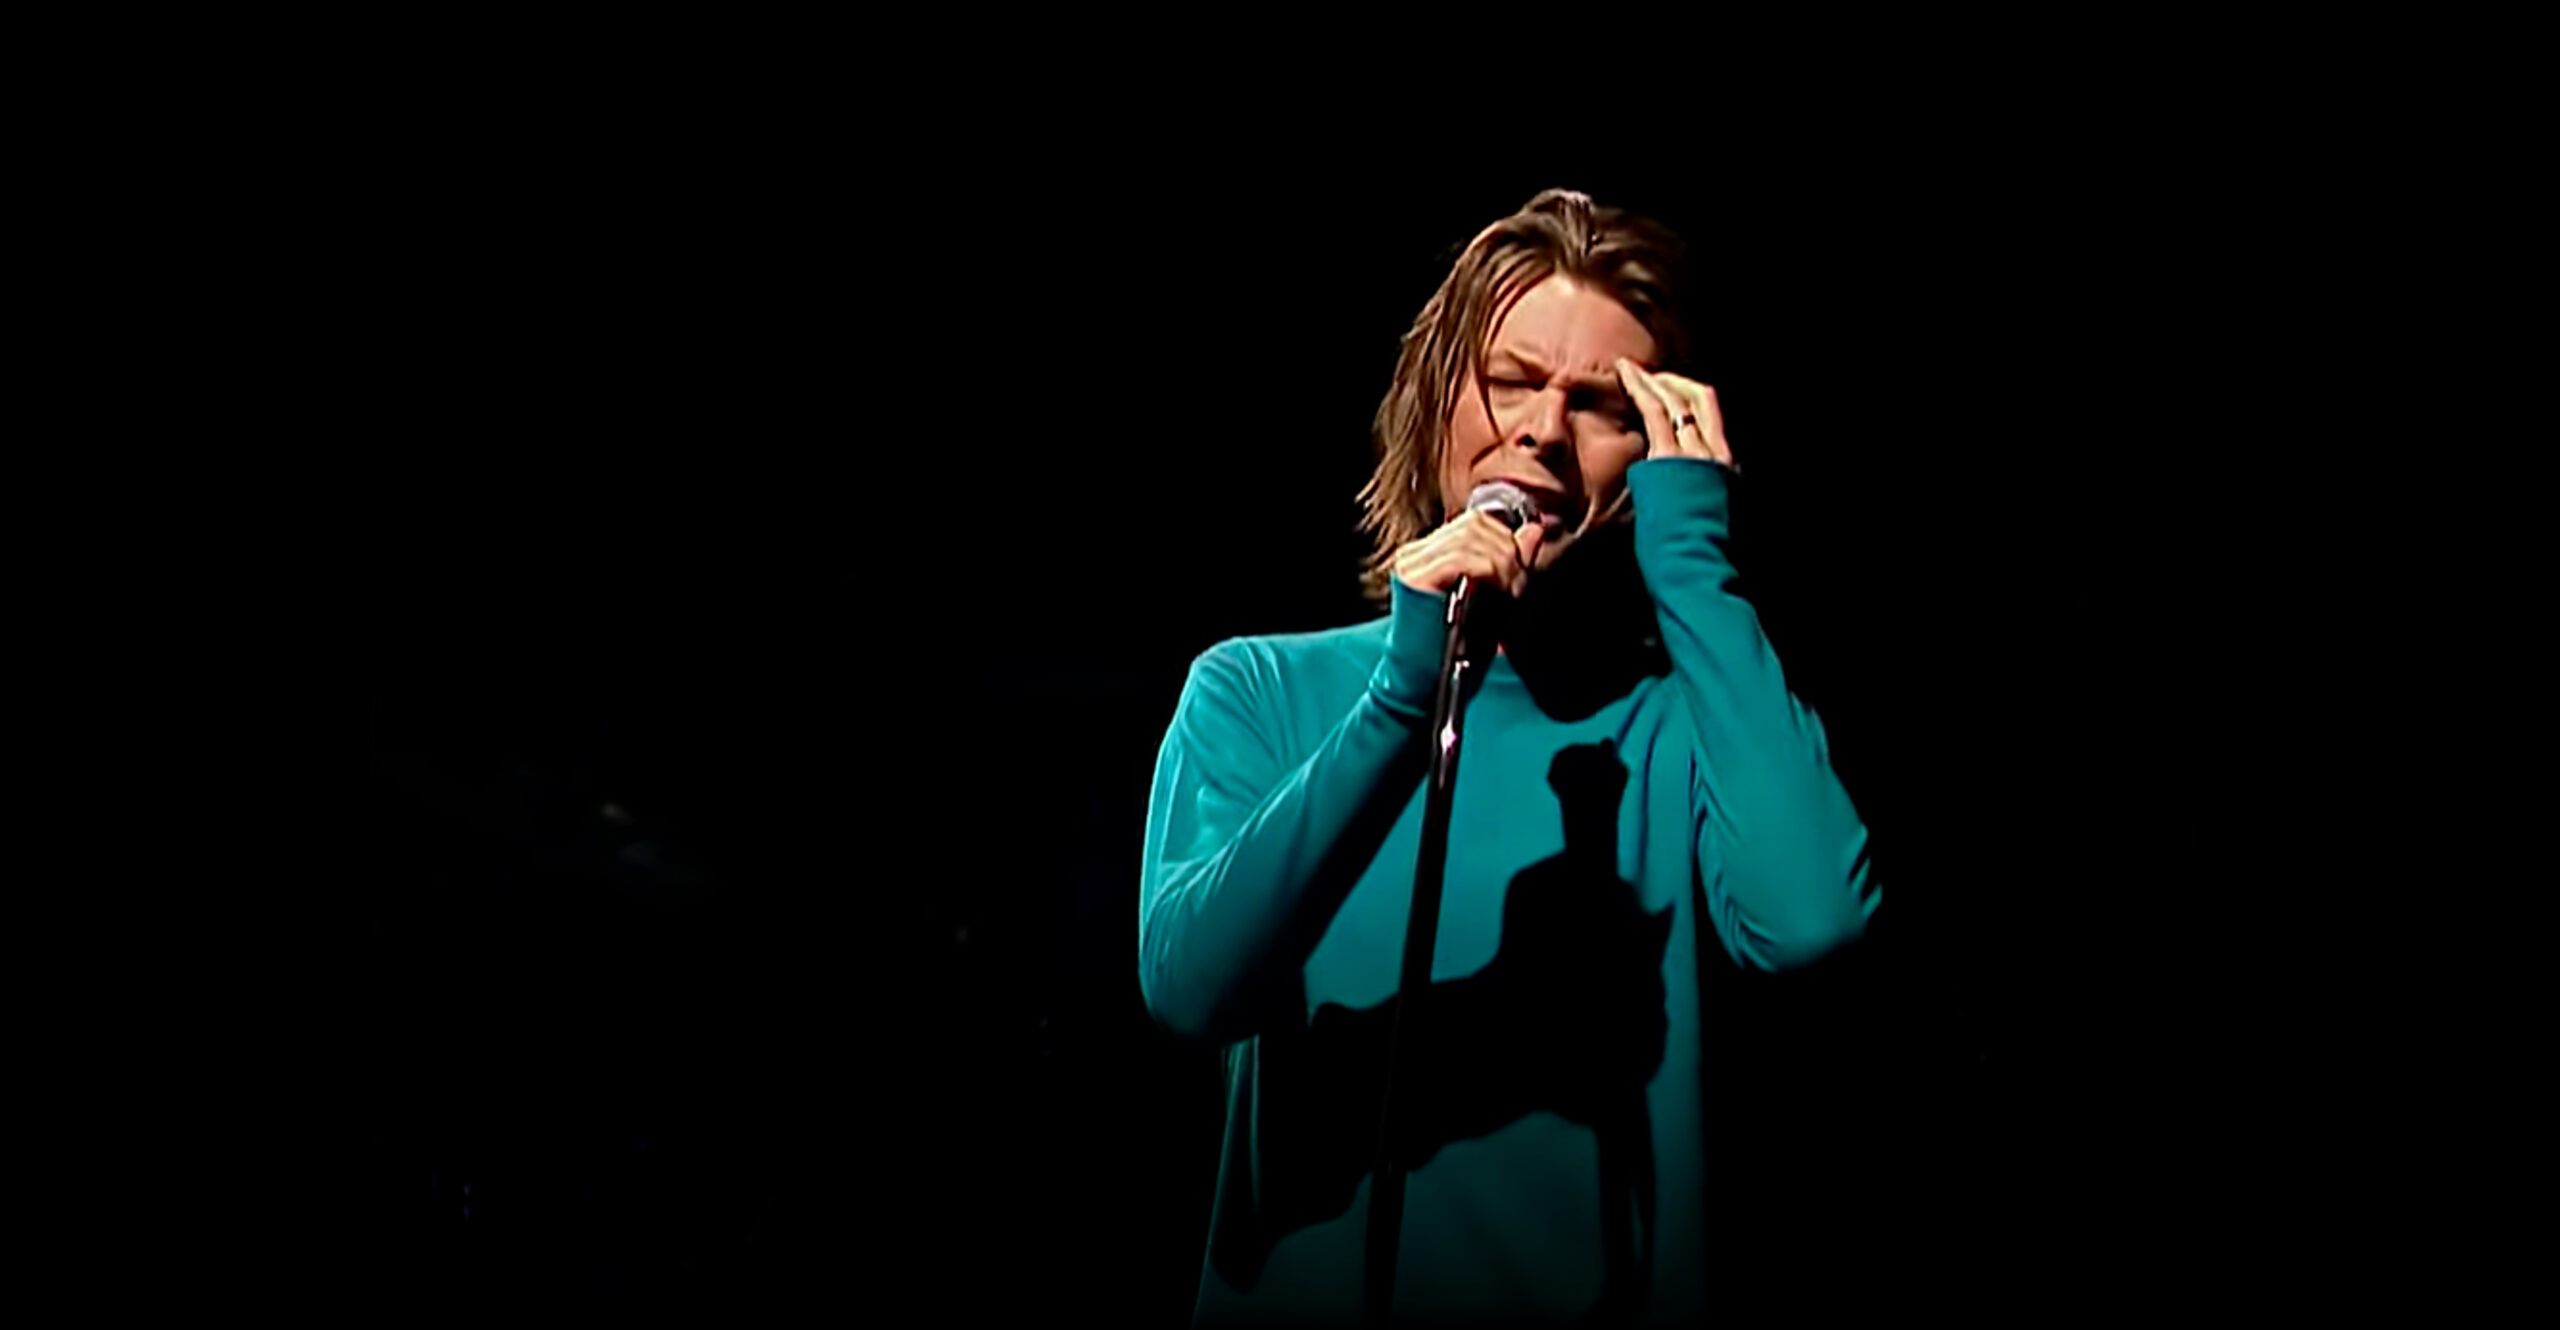 David Bowie with microphone